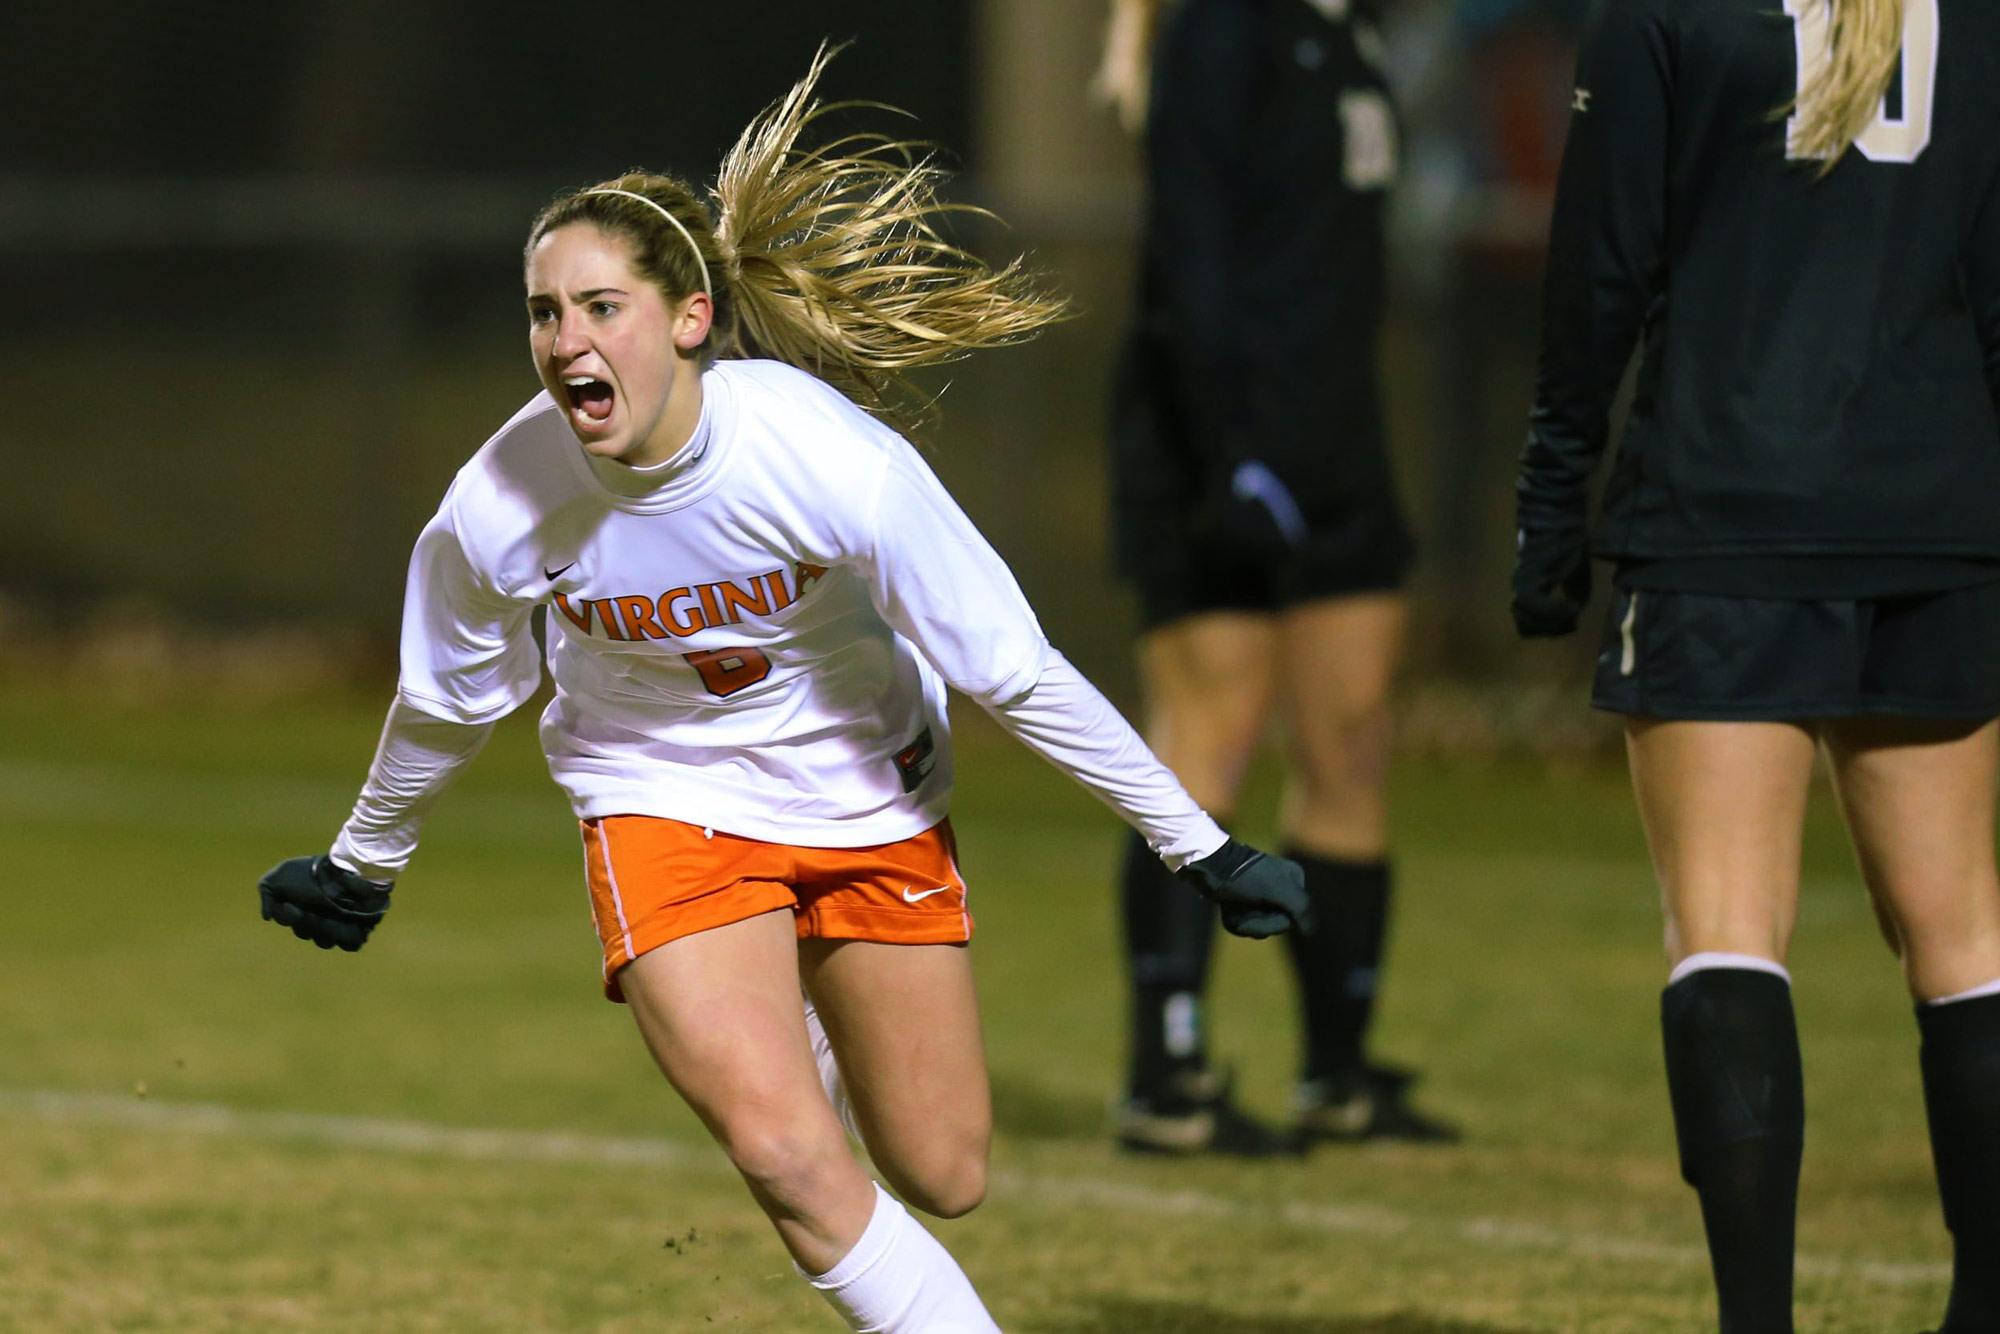 """""""This was the coldest game I ever played in at UVA,"""" Brian said. """"It was around 15 degrees. We beat Wake Forest 2-0 and dominated them."""""""